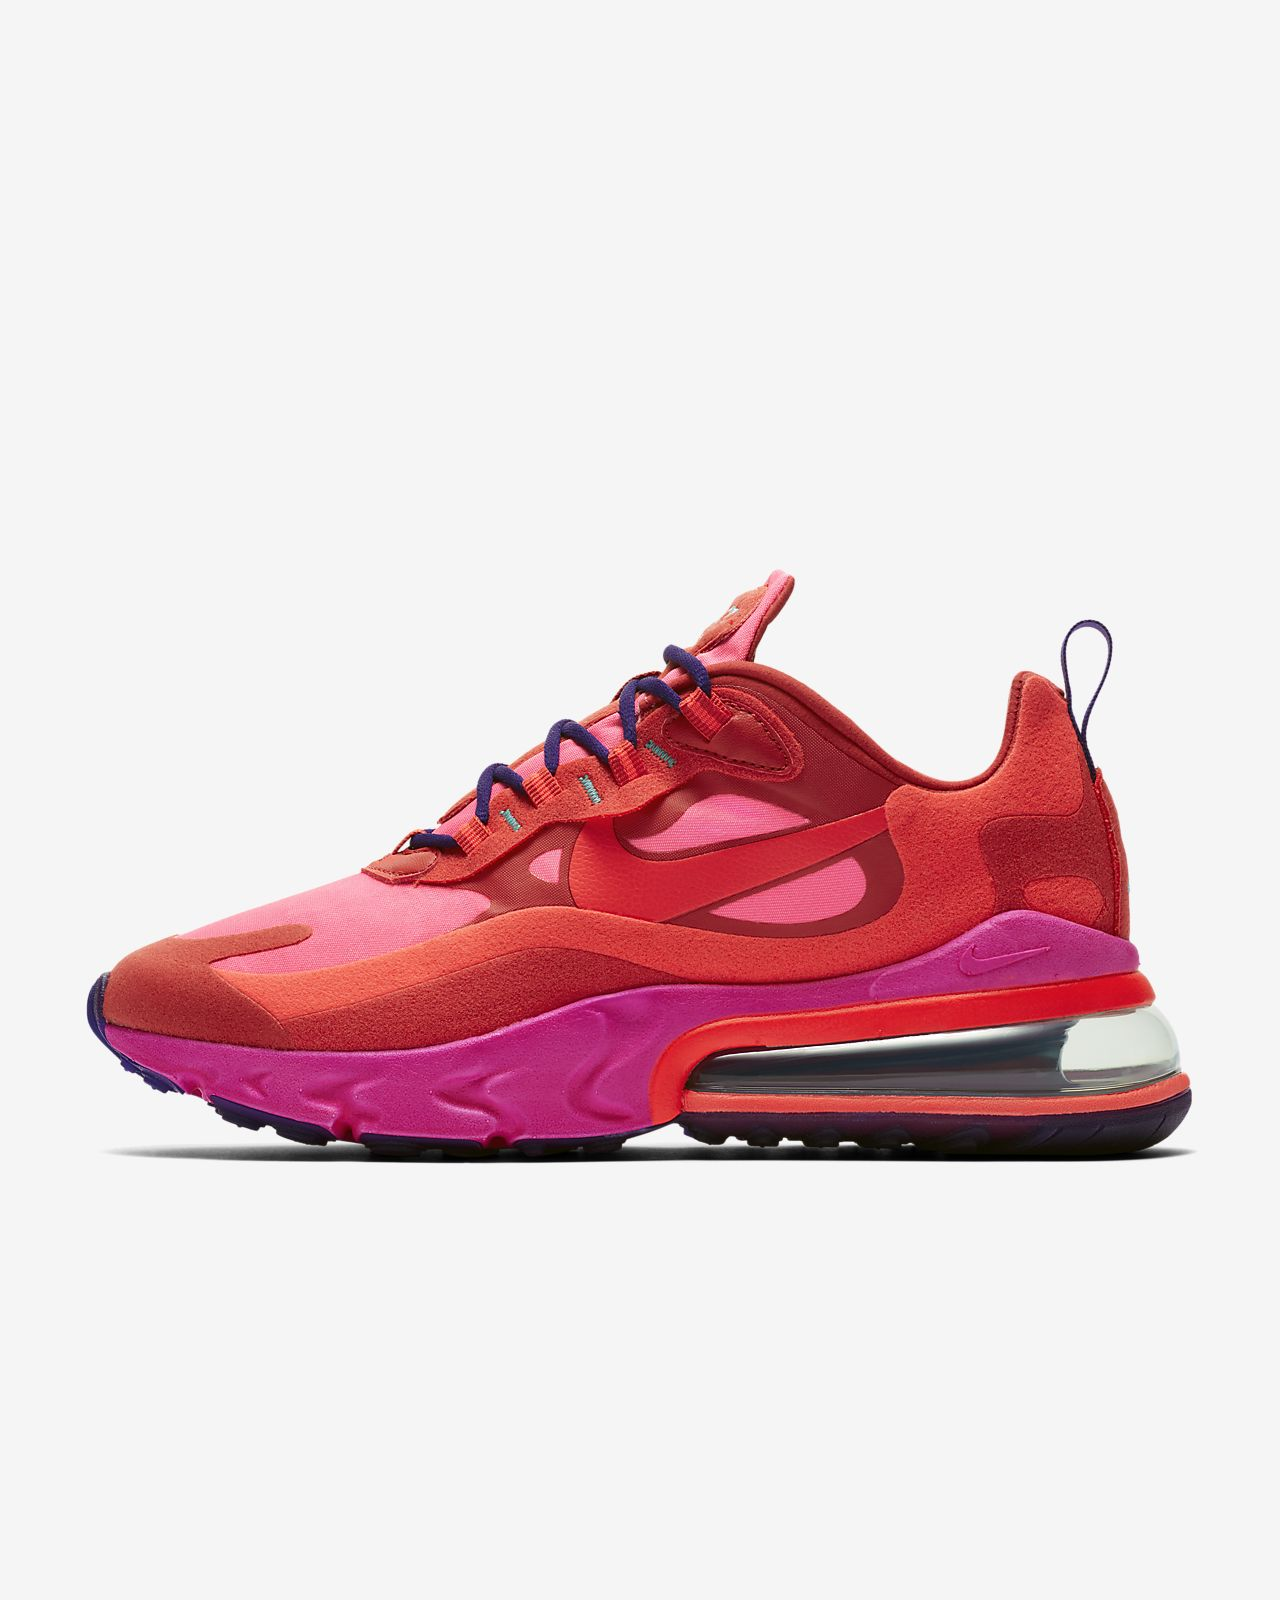 Nike Air Max 270 React Shoes Mystic RedPink BlastHabanero Red